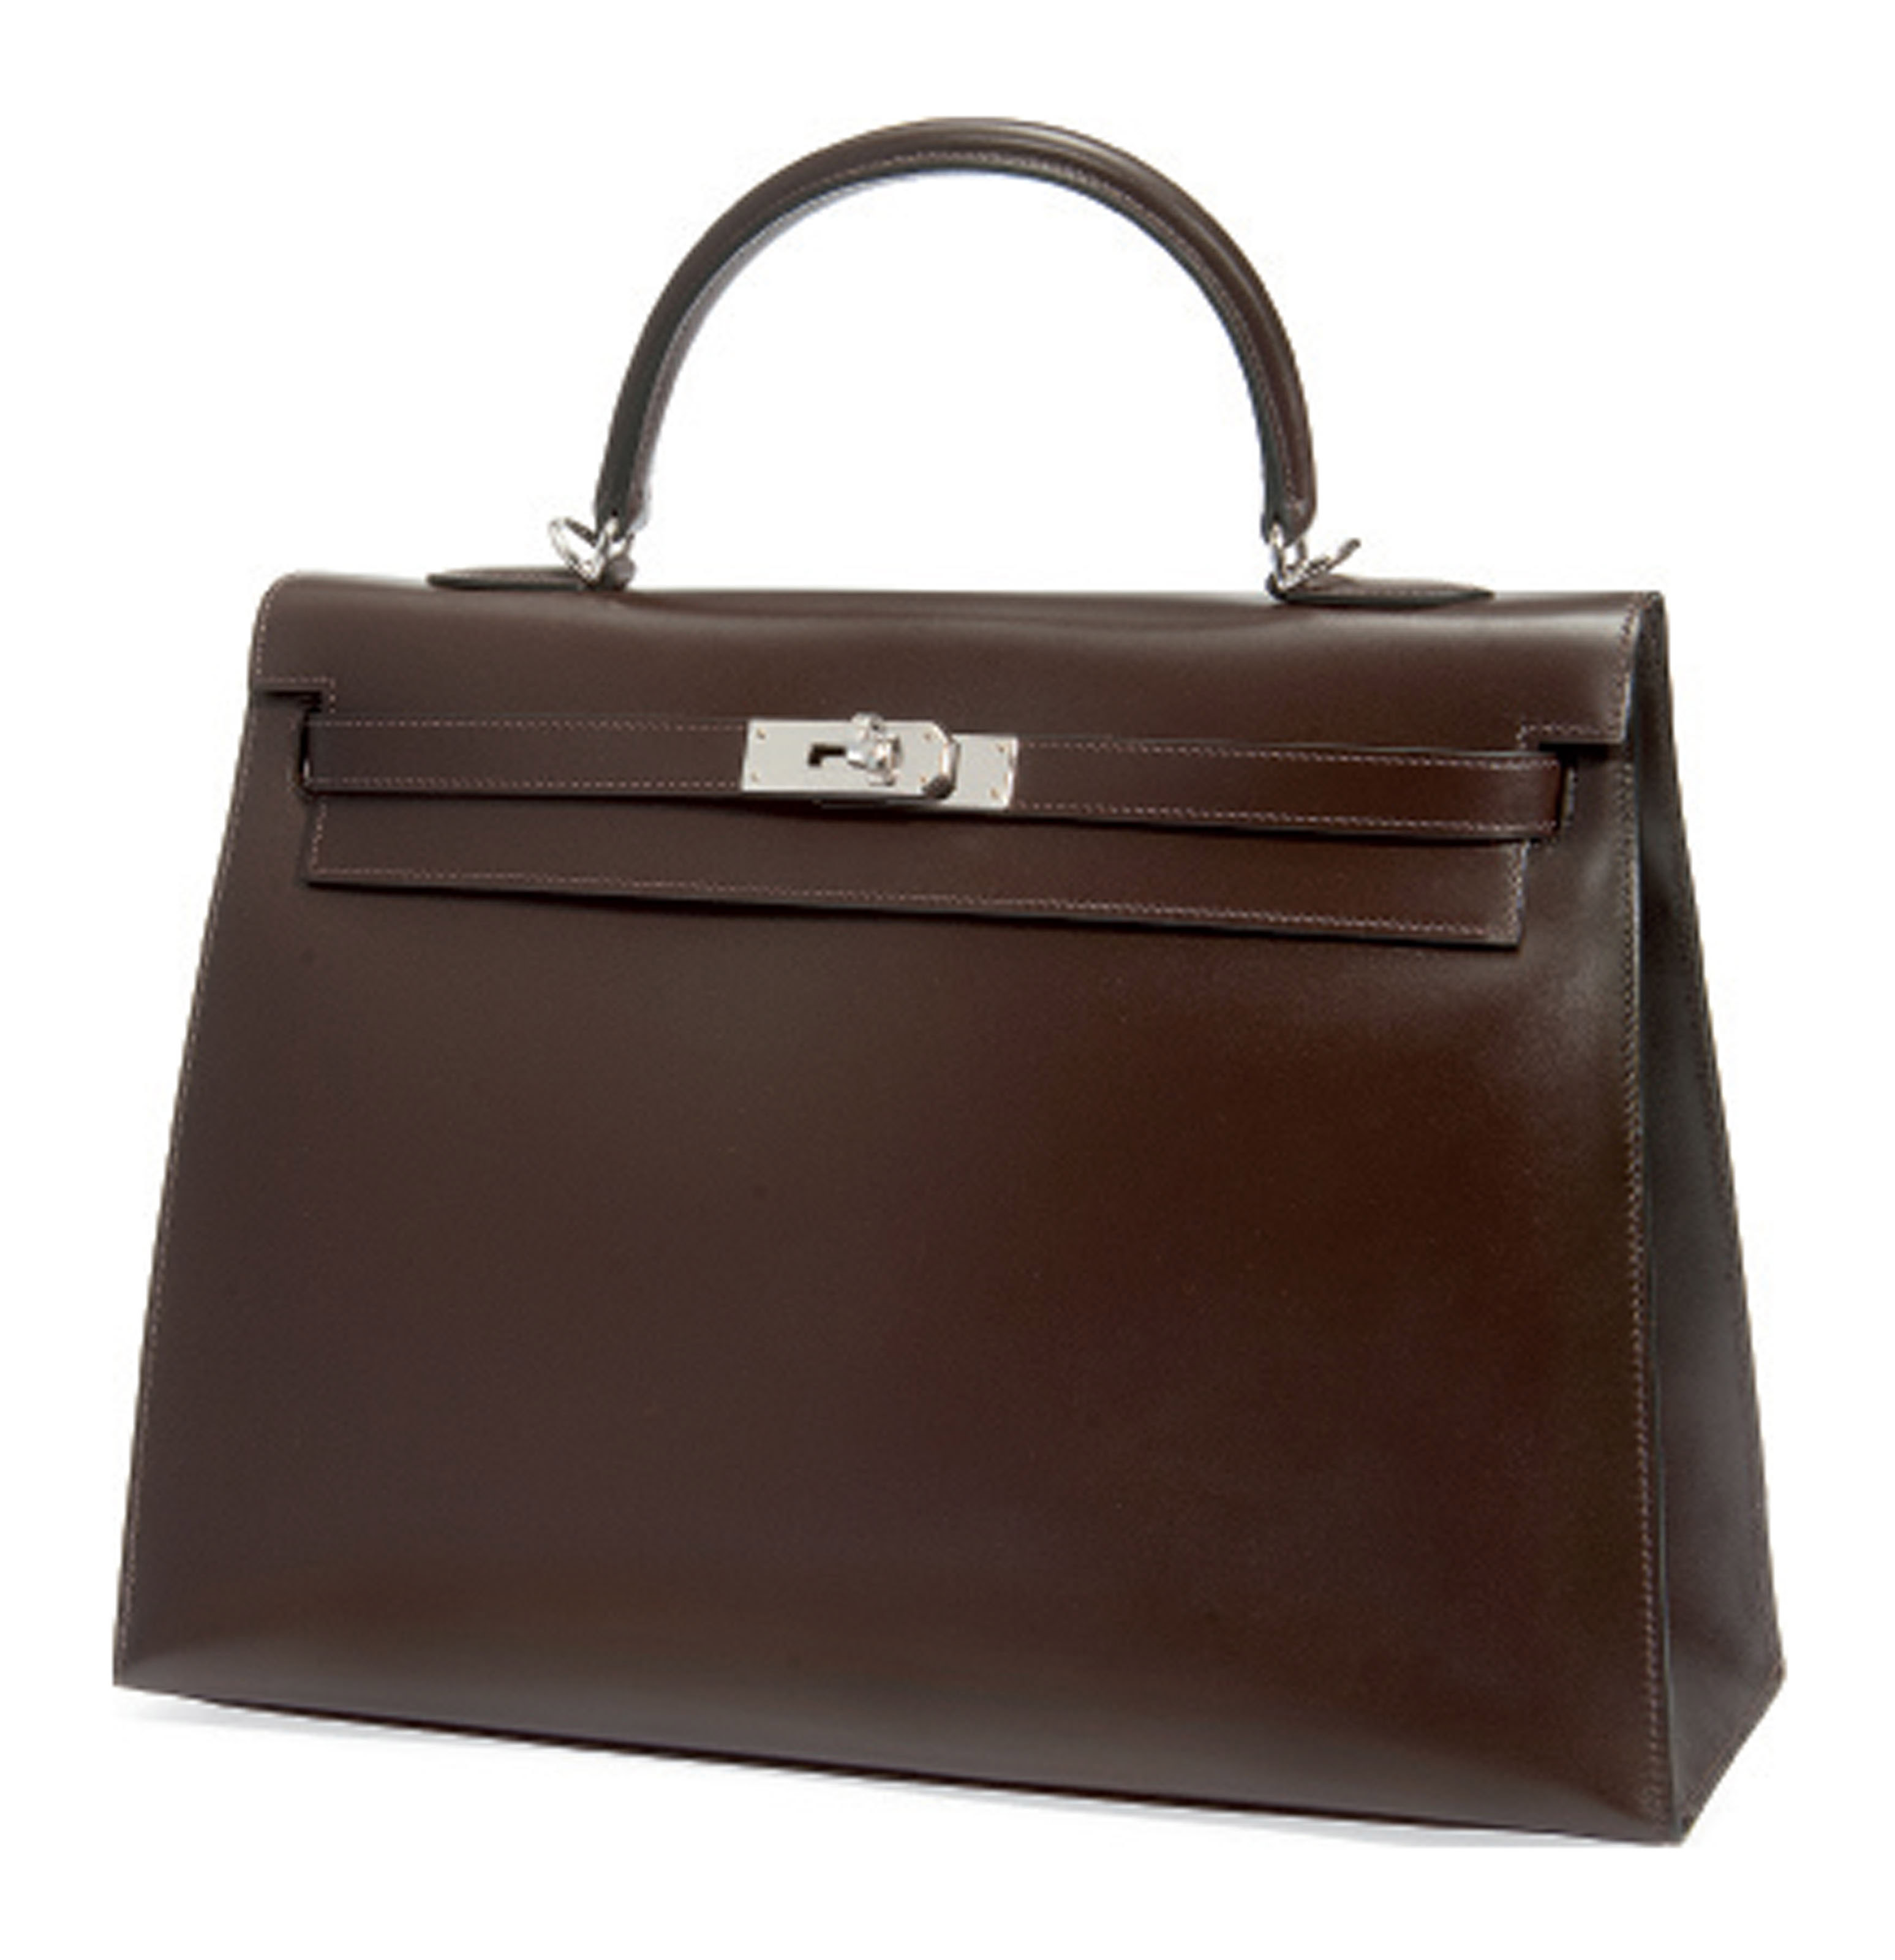 A CHOCOLATE BOX LEATHER 'KELLY